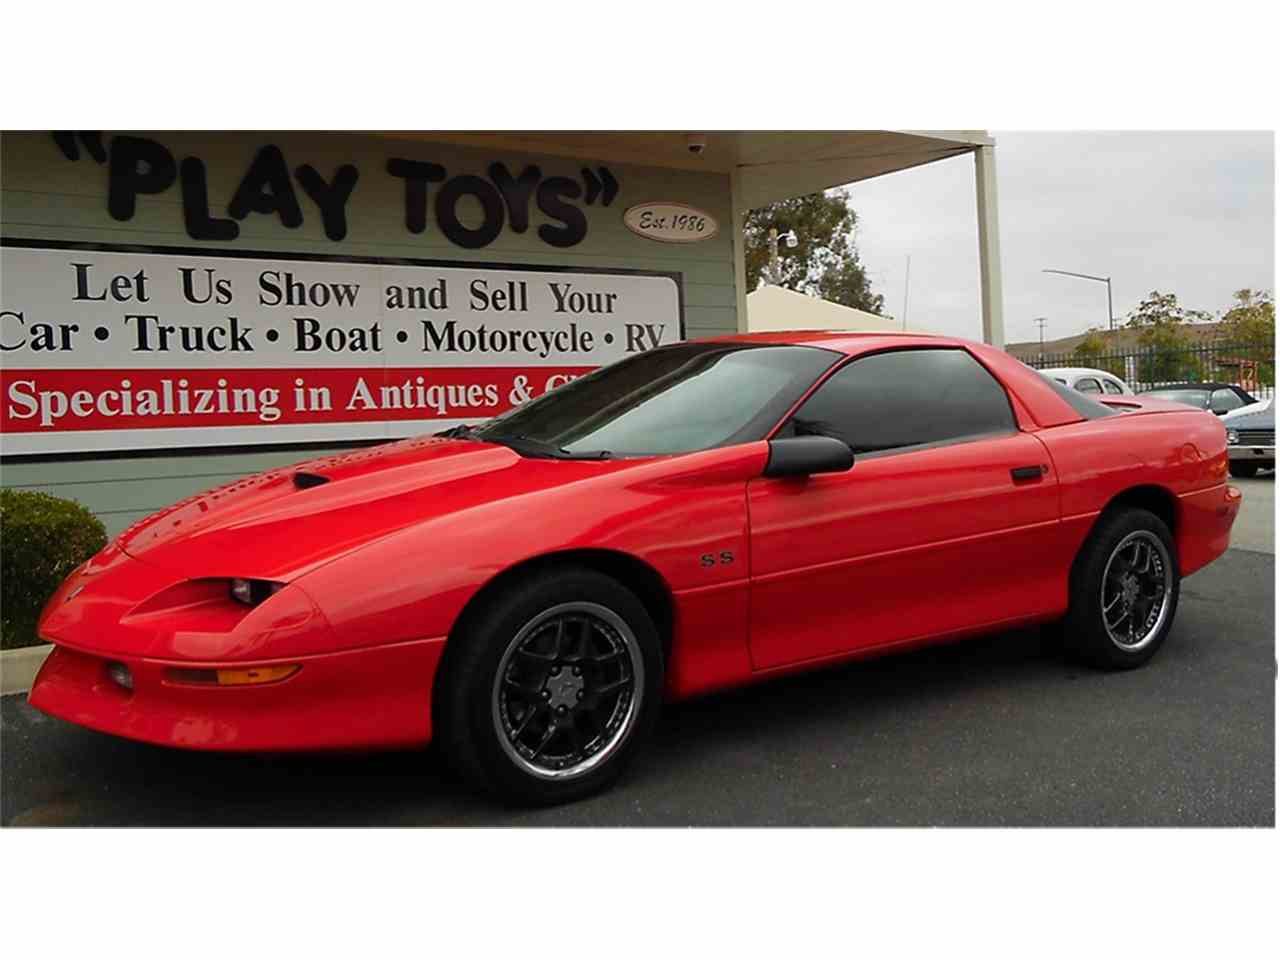 1997 Chevrolet Camaro SS for Sale - CC-919743